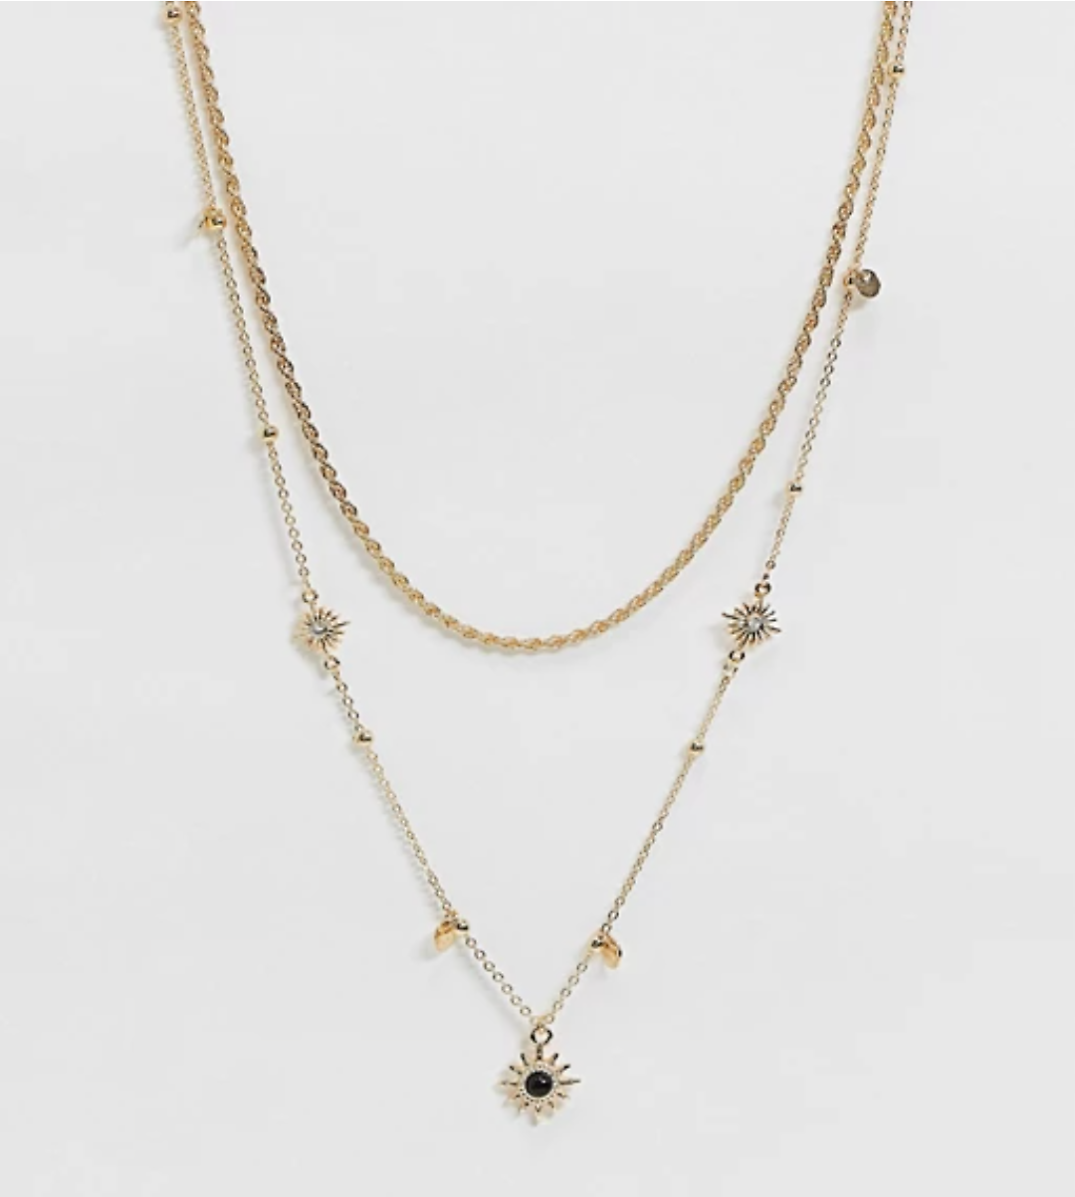 30% OFF Multirow Necklace with Celestial Star Charms and Faux Black Stone in Gold Tone | ASOS